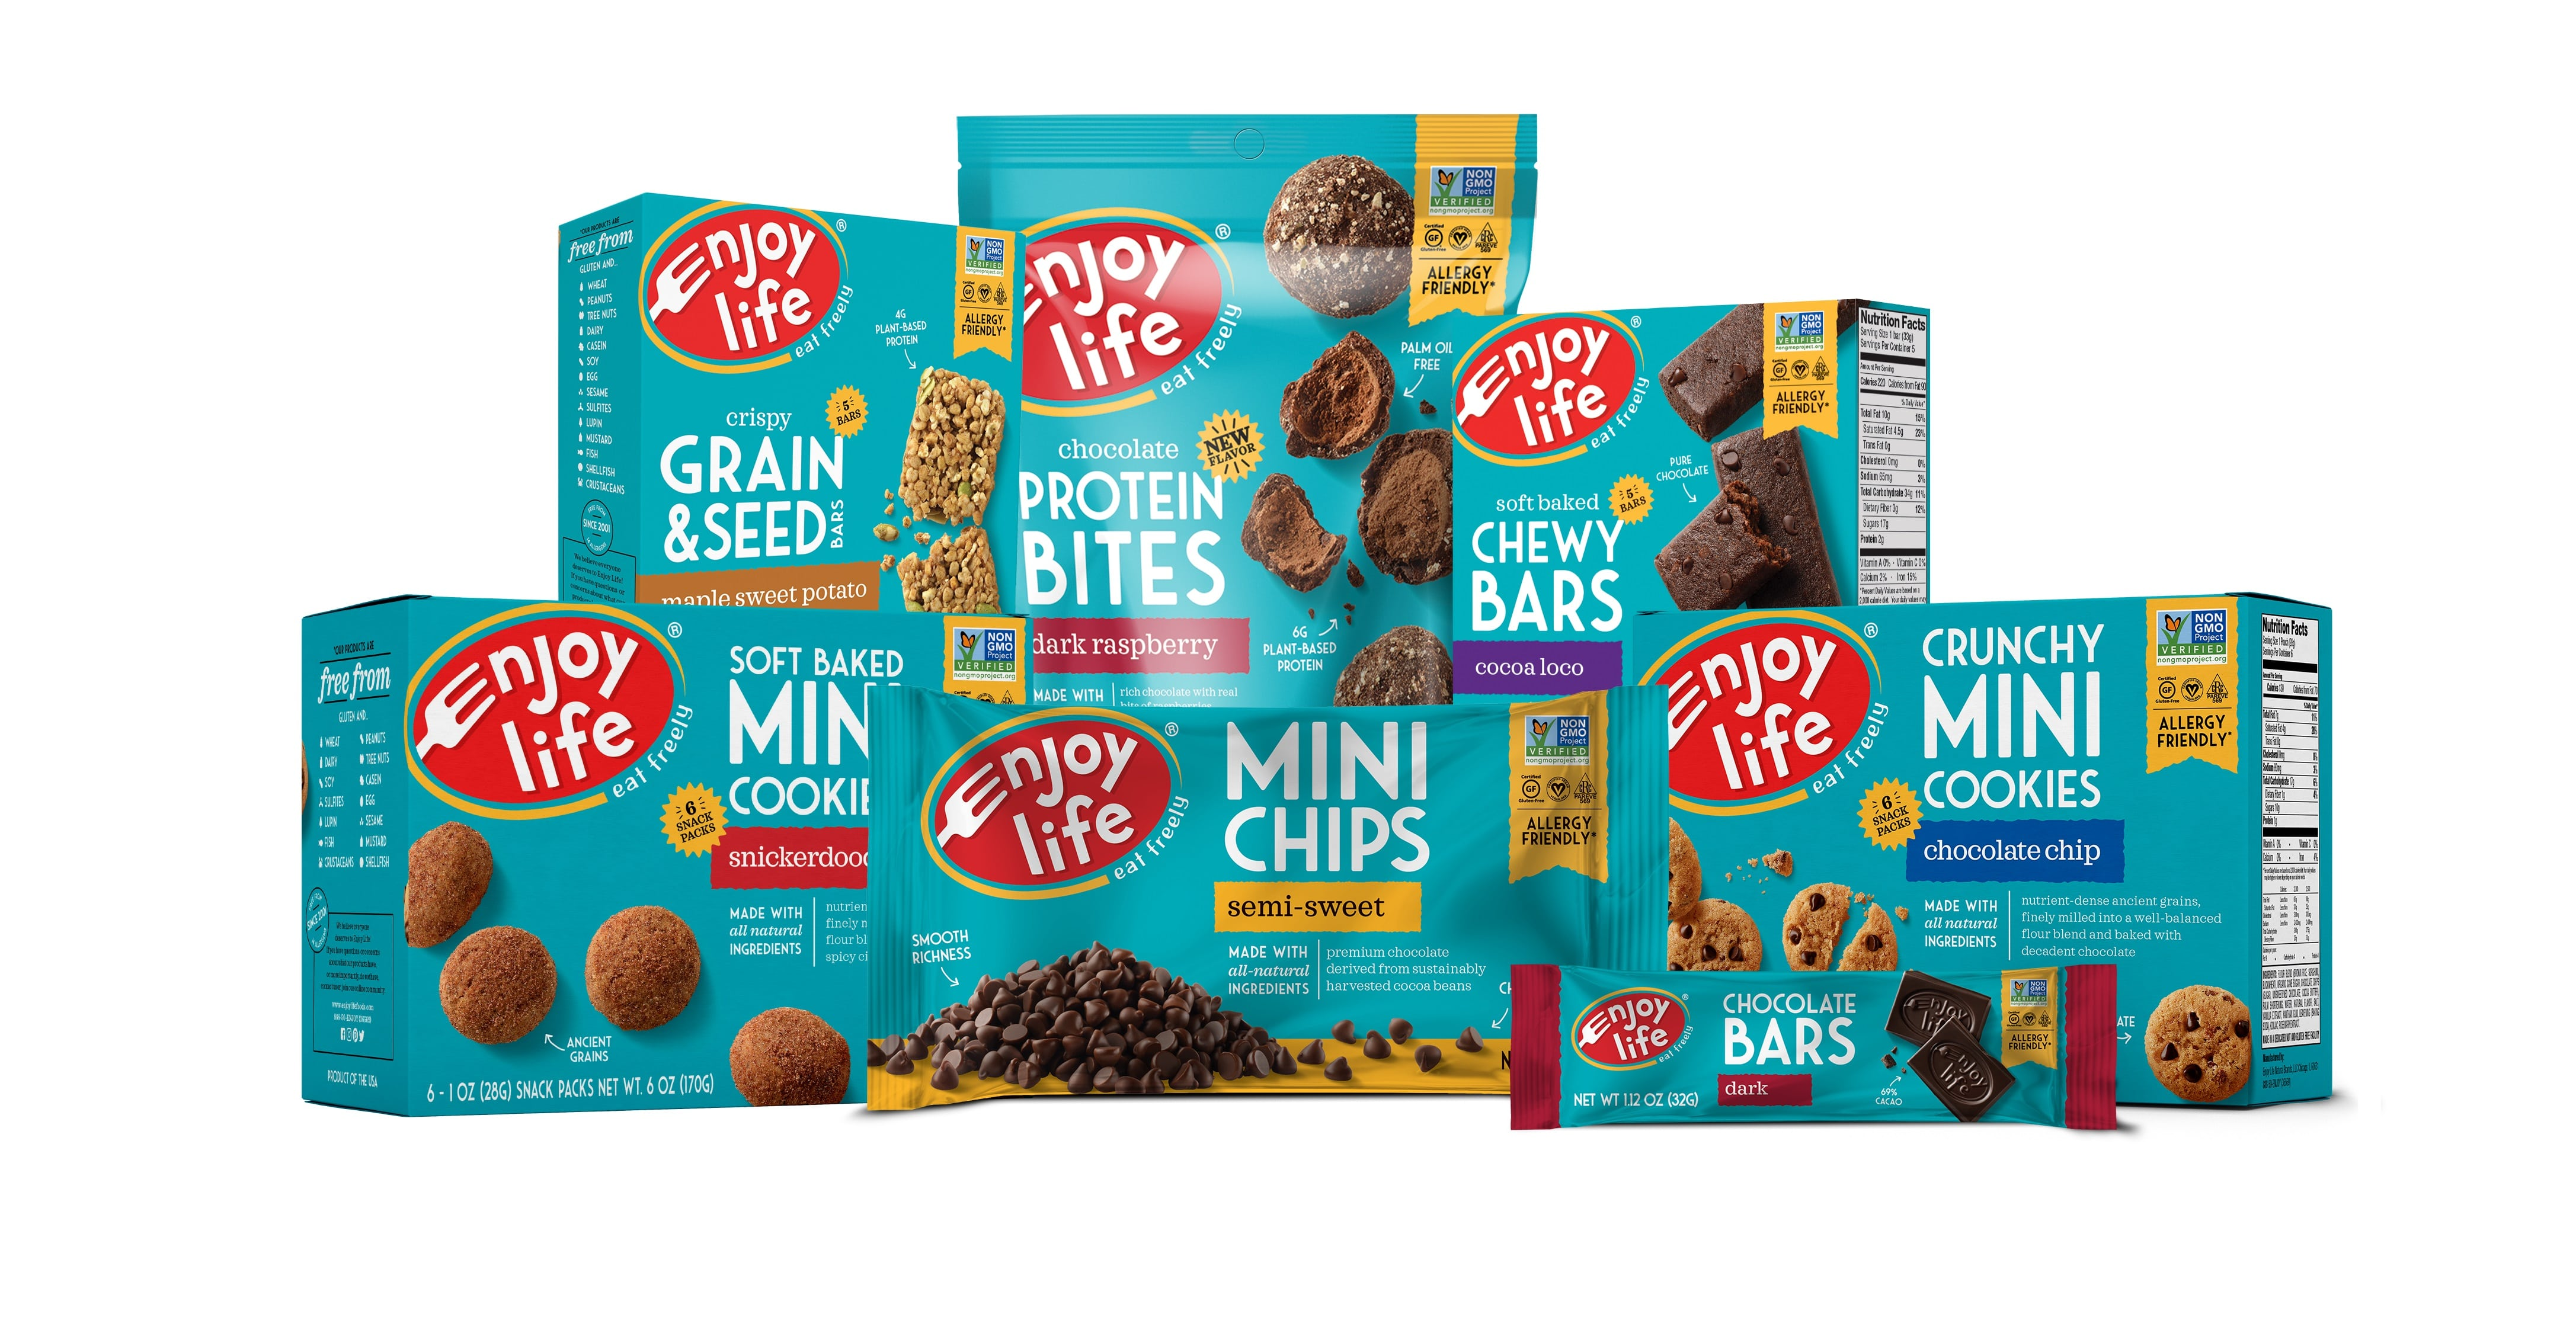 Enjoy Life Foods to Launch Soft-Baked Breakfast Ovals at Expo East